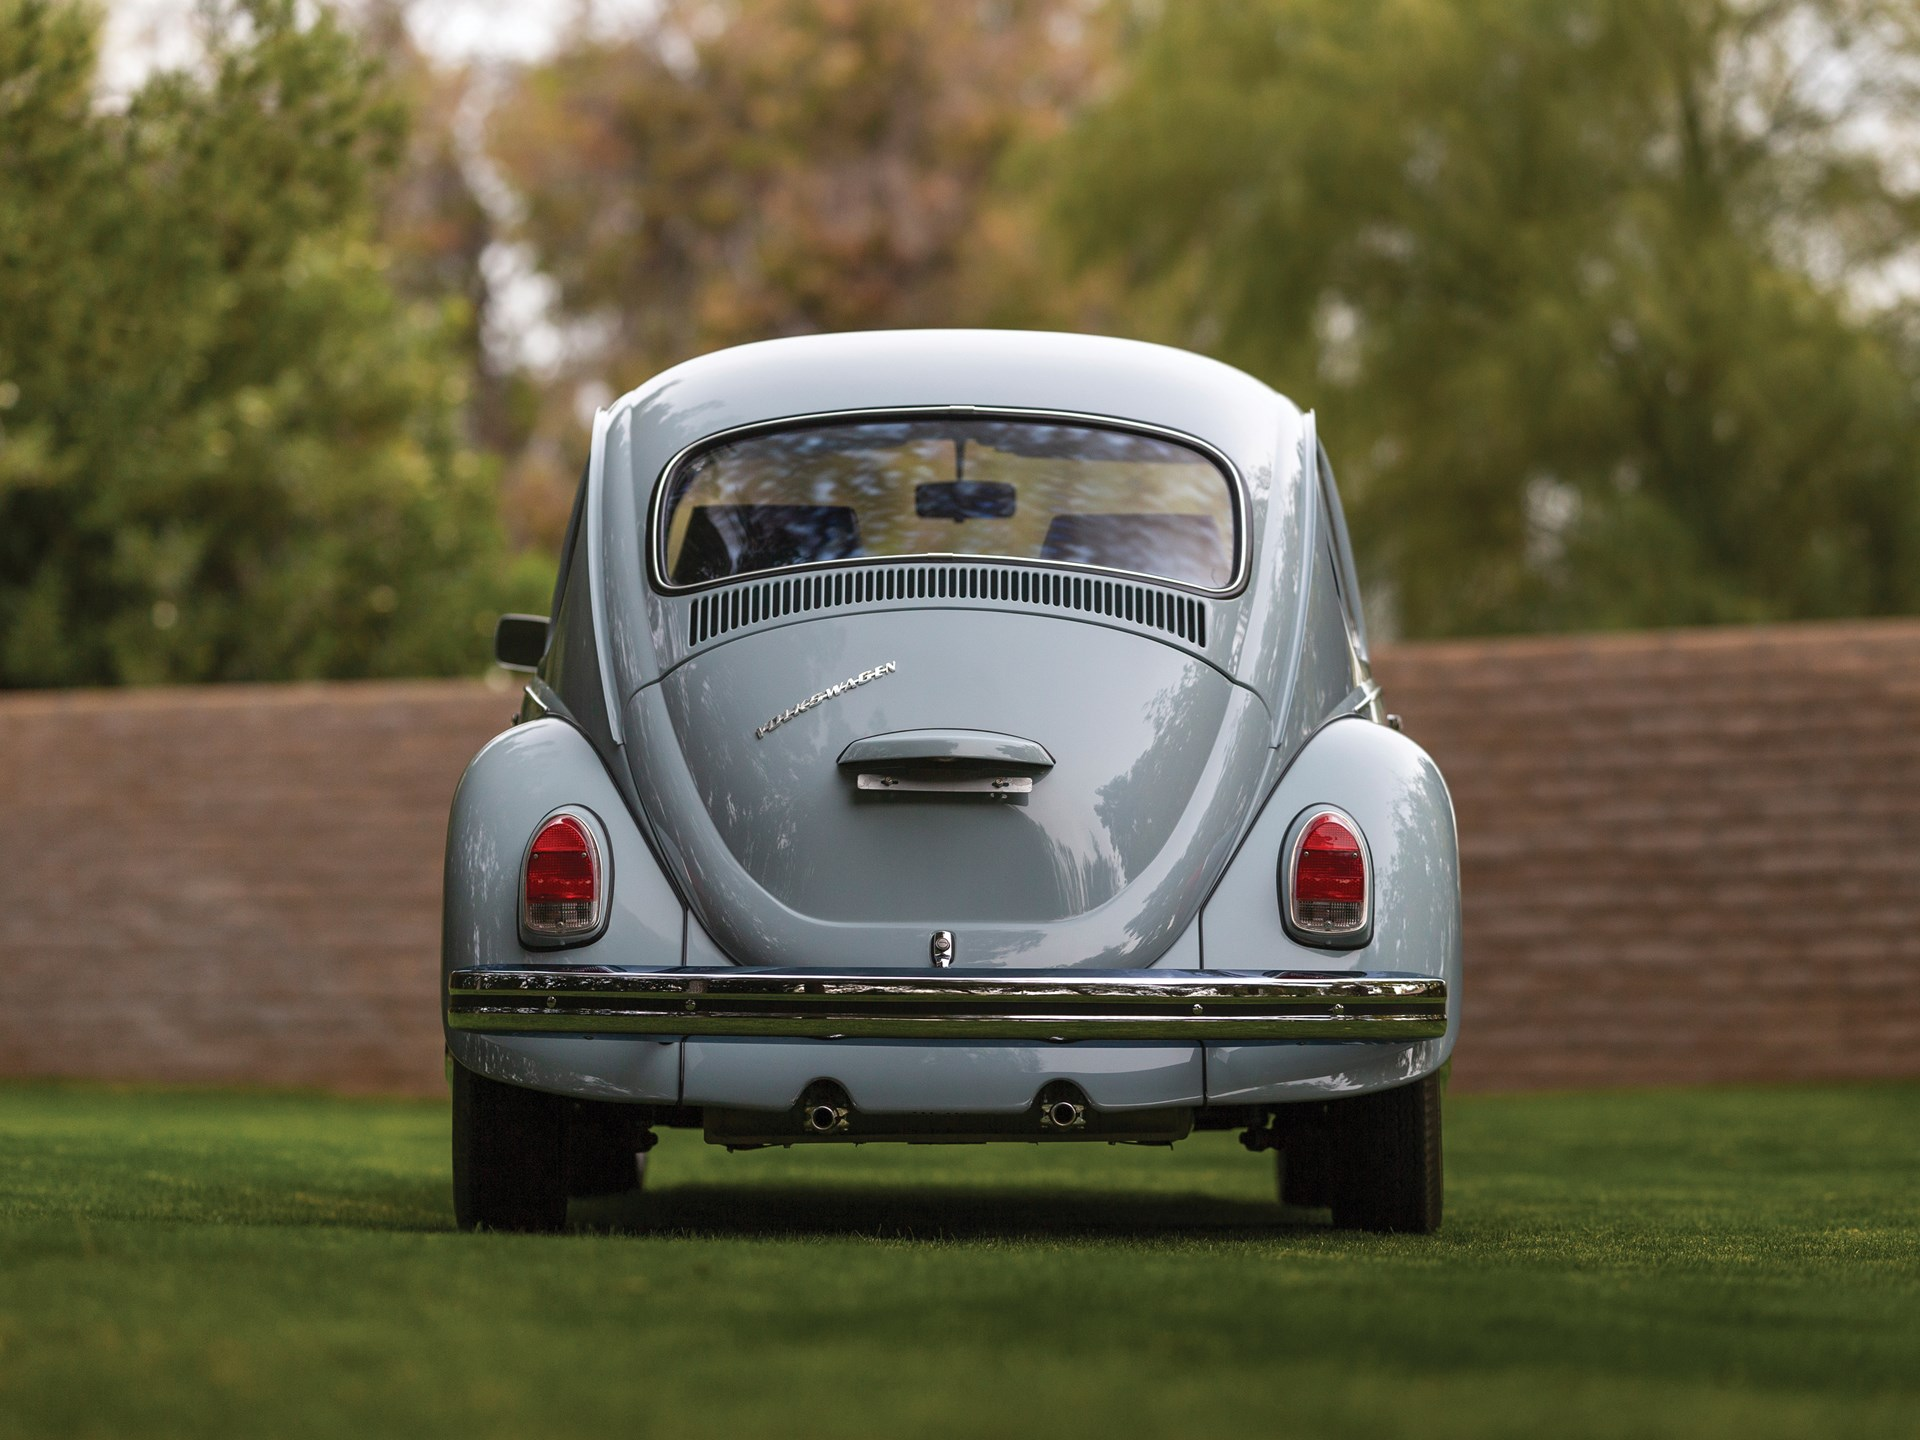 RM Sotheby's - 1968 Volkswagen Beetle Sedan | Arizona 2019